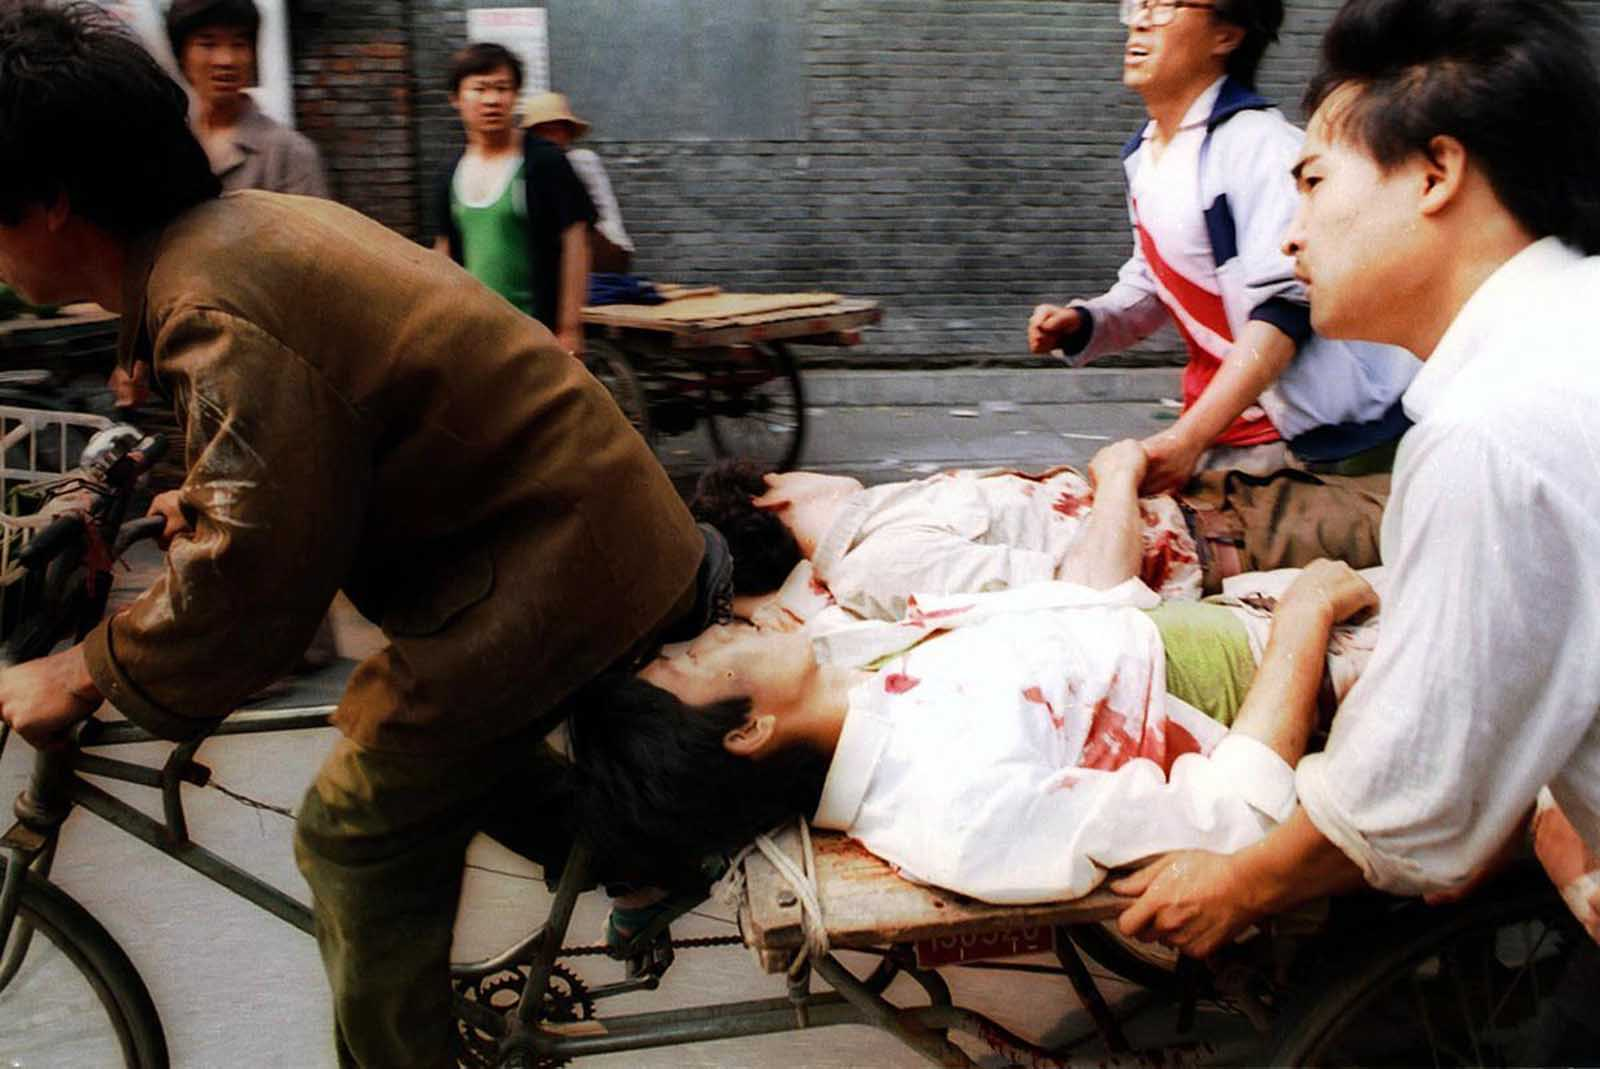 A rickshaw driver fiercely pedals wounded people to a nearby hospital, with the help of bystanders, on June 4, 1989. PLA soldiers again fired hundreds of rounds towards angry crowds gathered outside Tiananmen Square at noon.